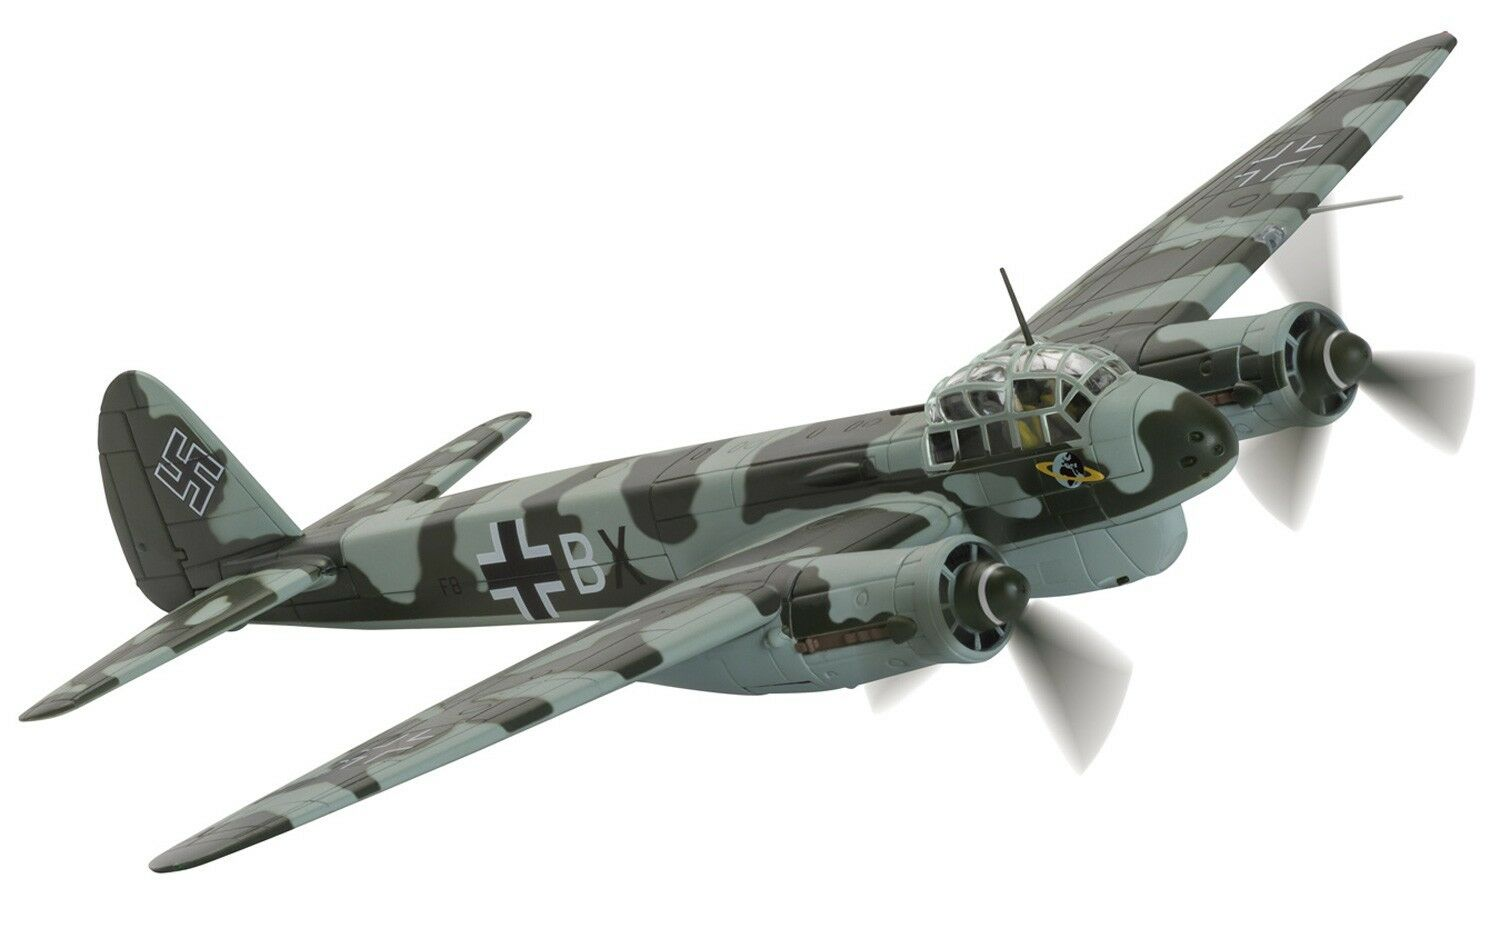 CORGI Junkers Ju-88C-6 F8+BX, 13. KG40, Battle over the Biscay AA36711